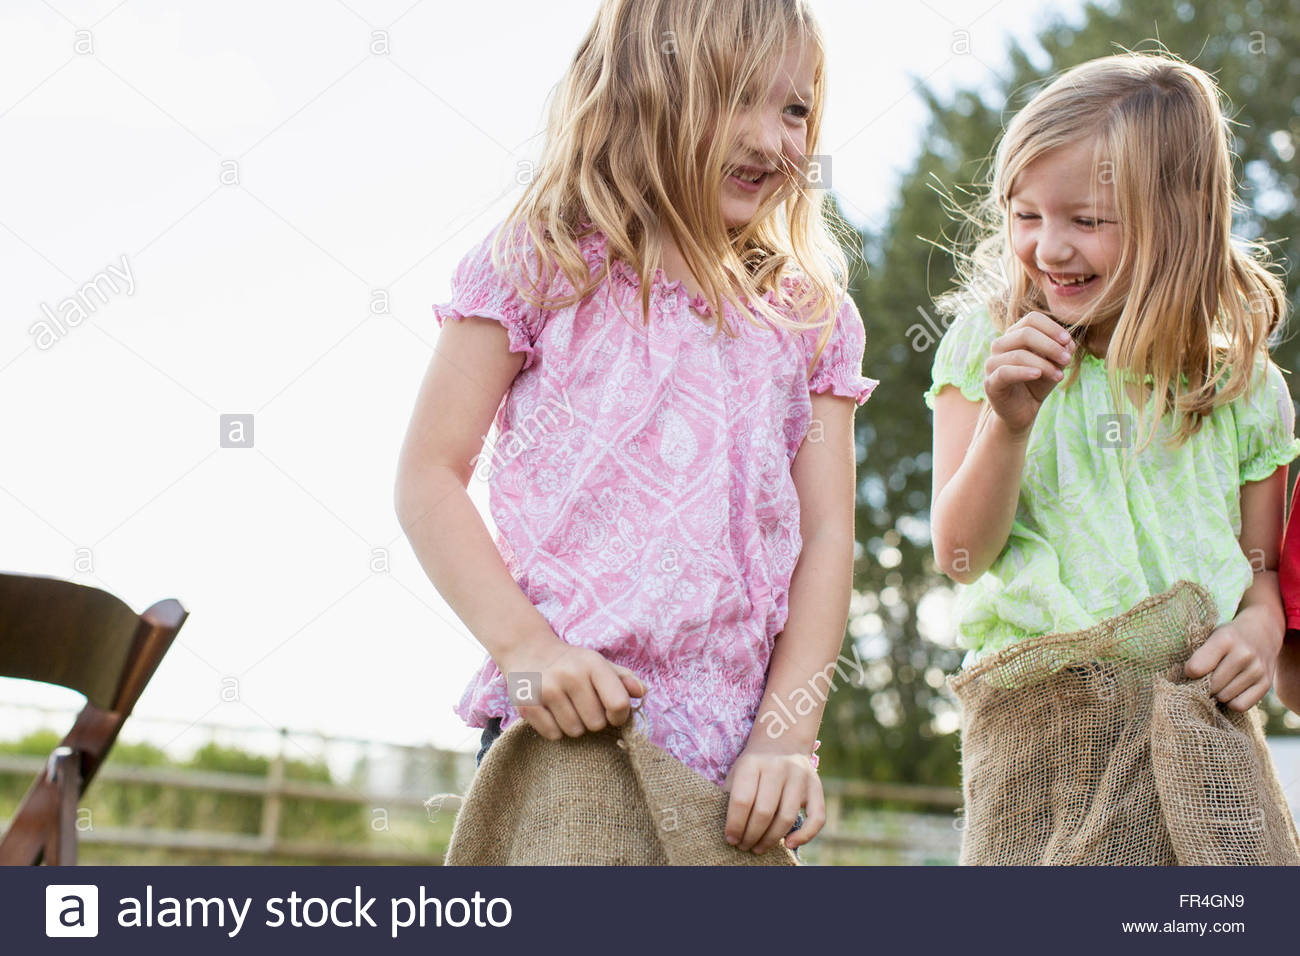 Twin sisters in a potato sack race. Stock Photo